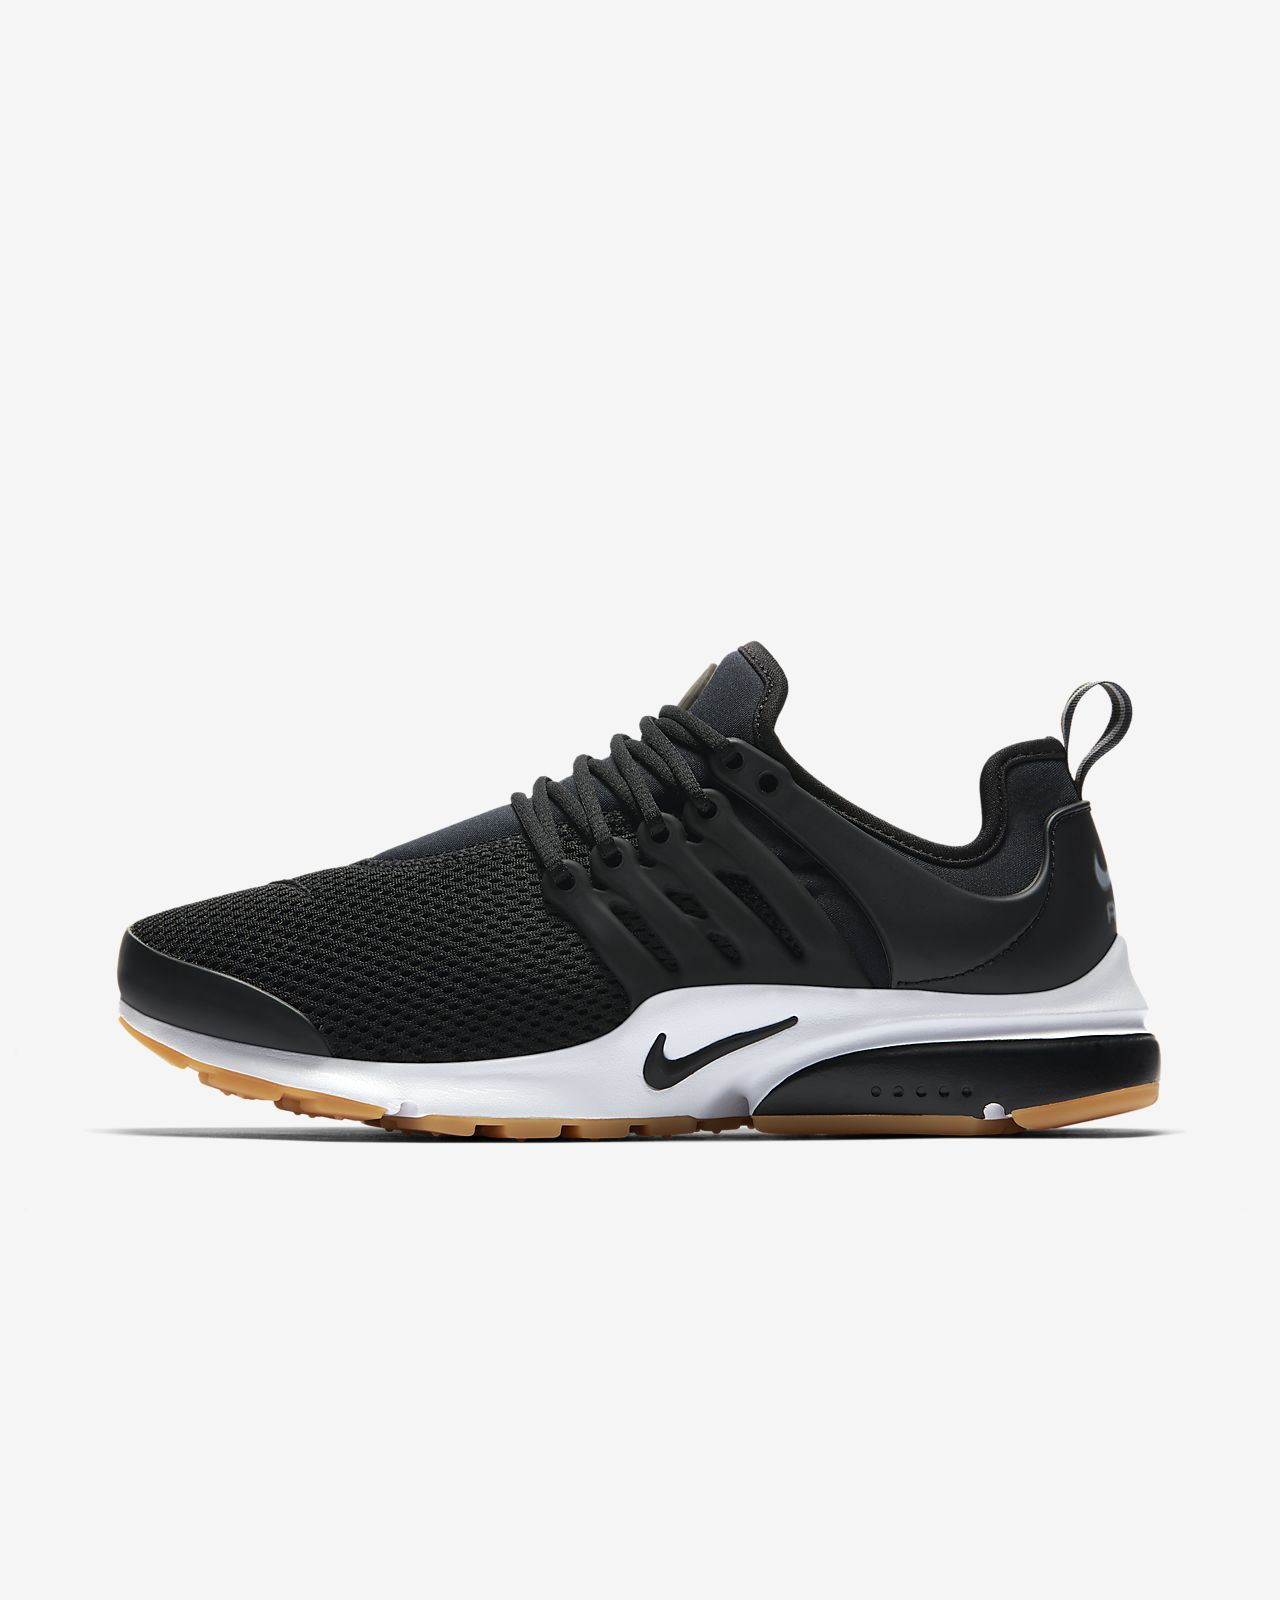 ed131f8de53 Women s Shoe. Nike Air Presto